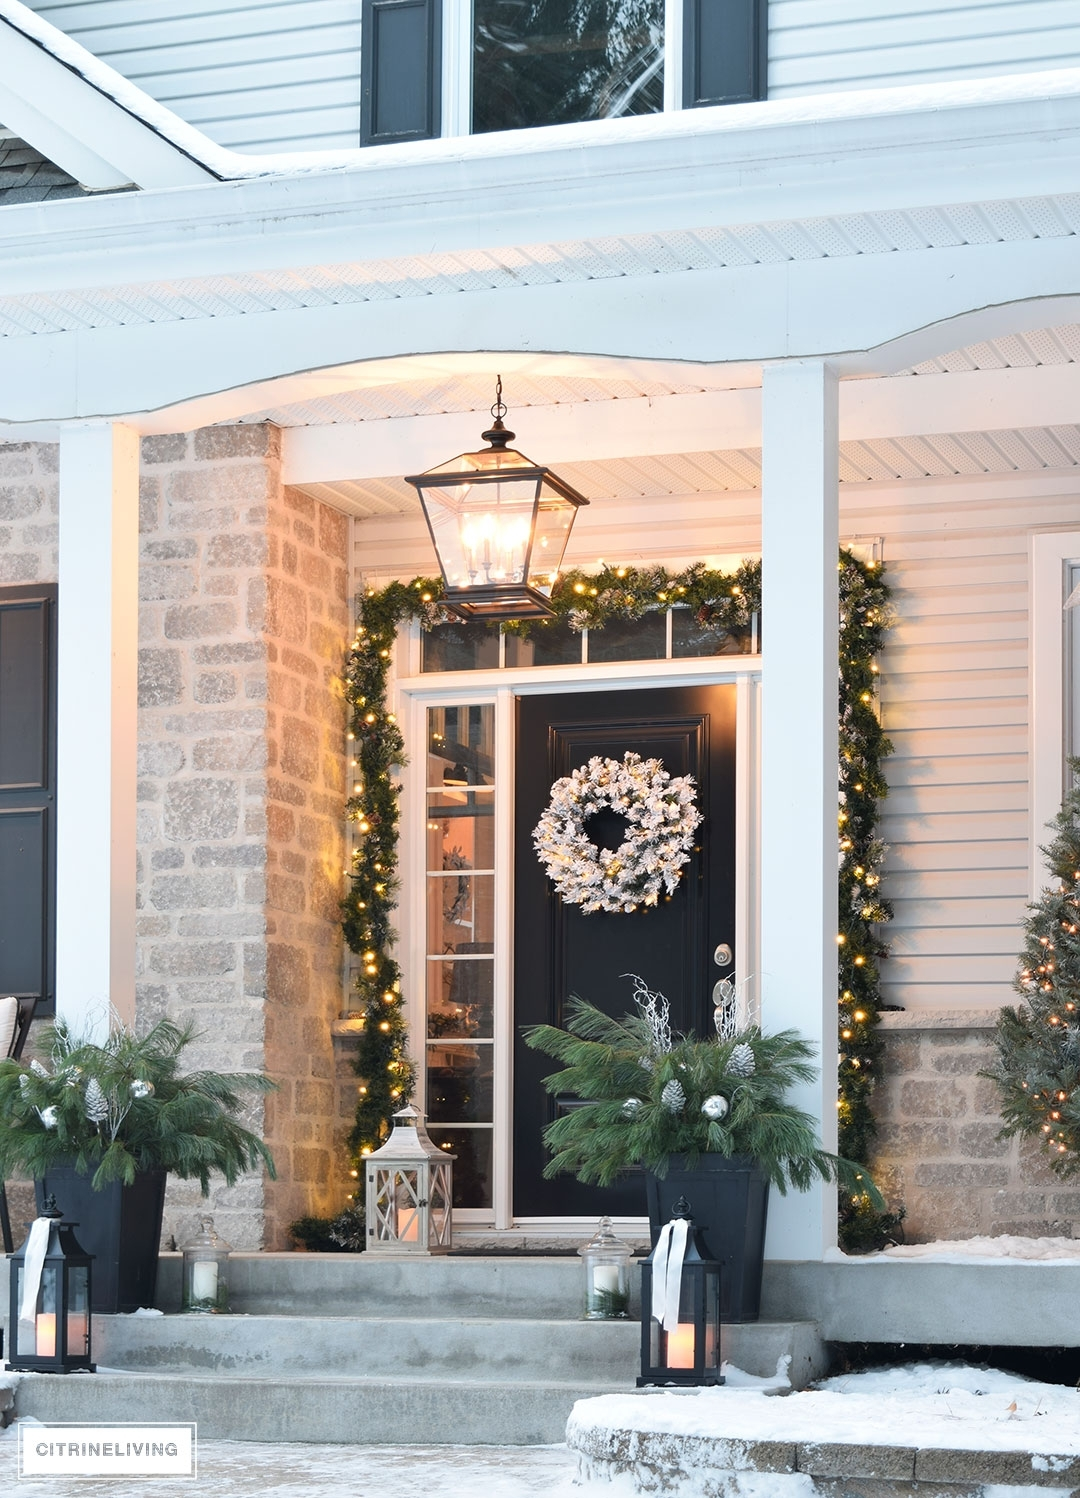 Citrineliving -Outdoor Christmas Decor And New Lighting throughout Outdoor Lanterns for Front Porch (Image 3 of 20)